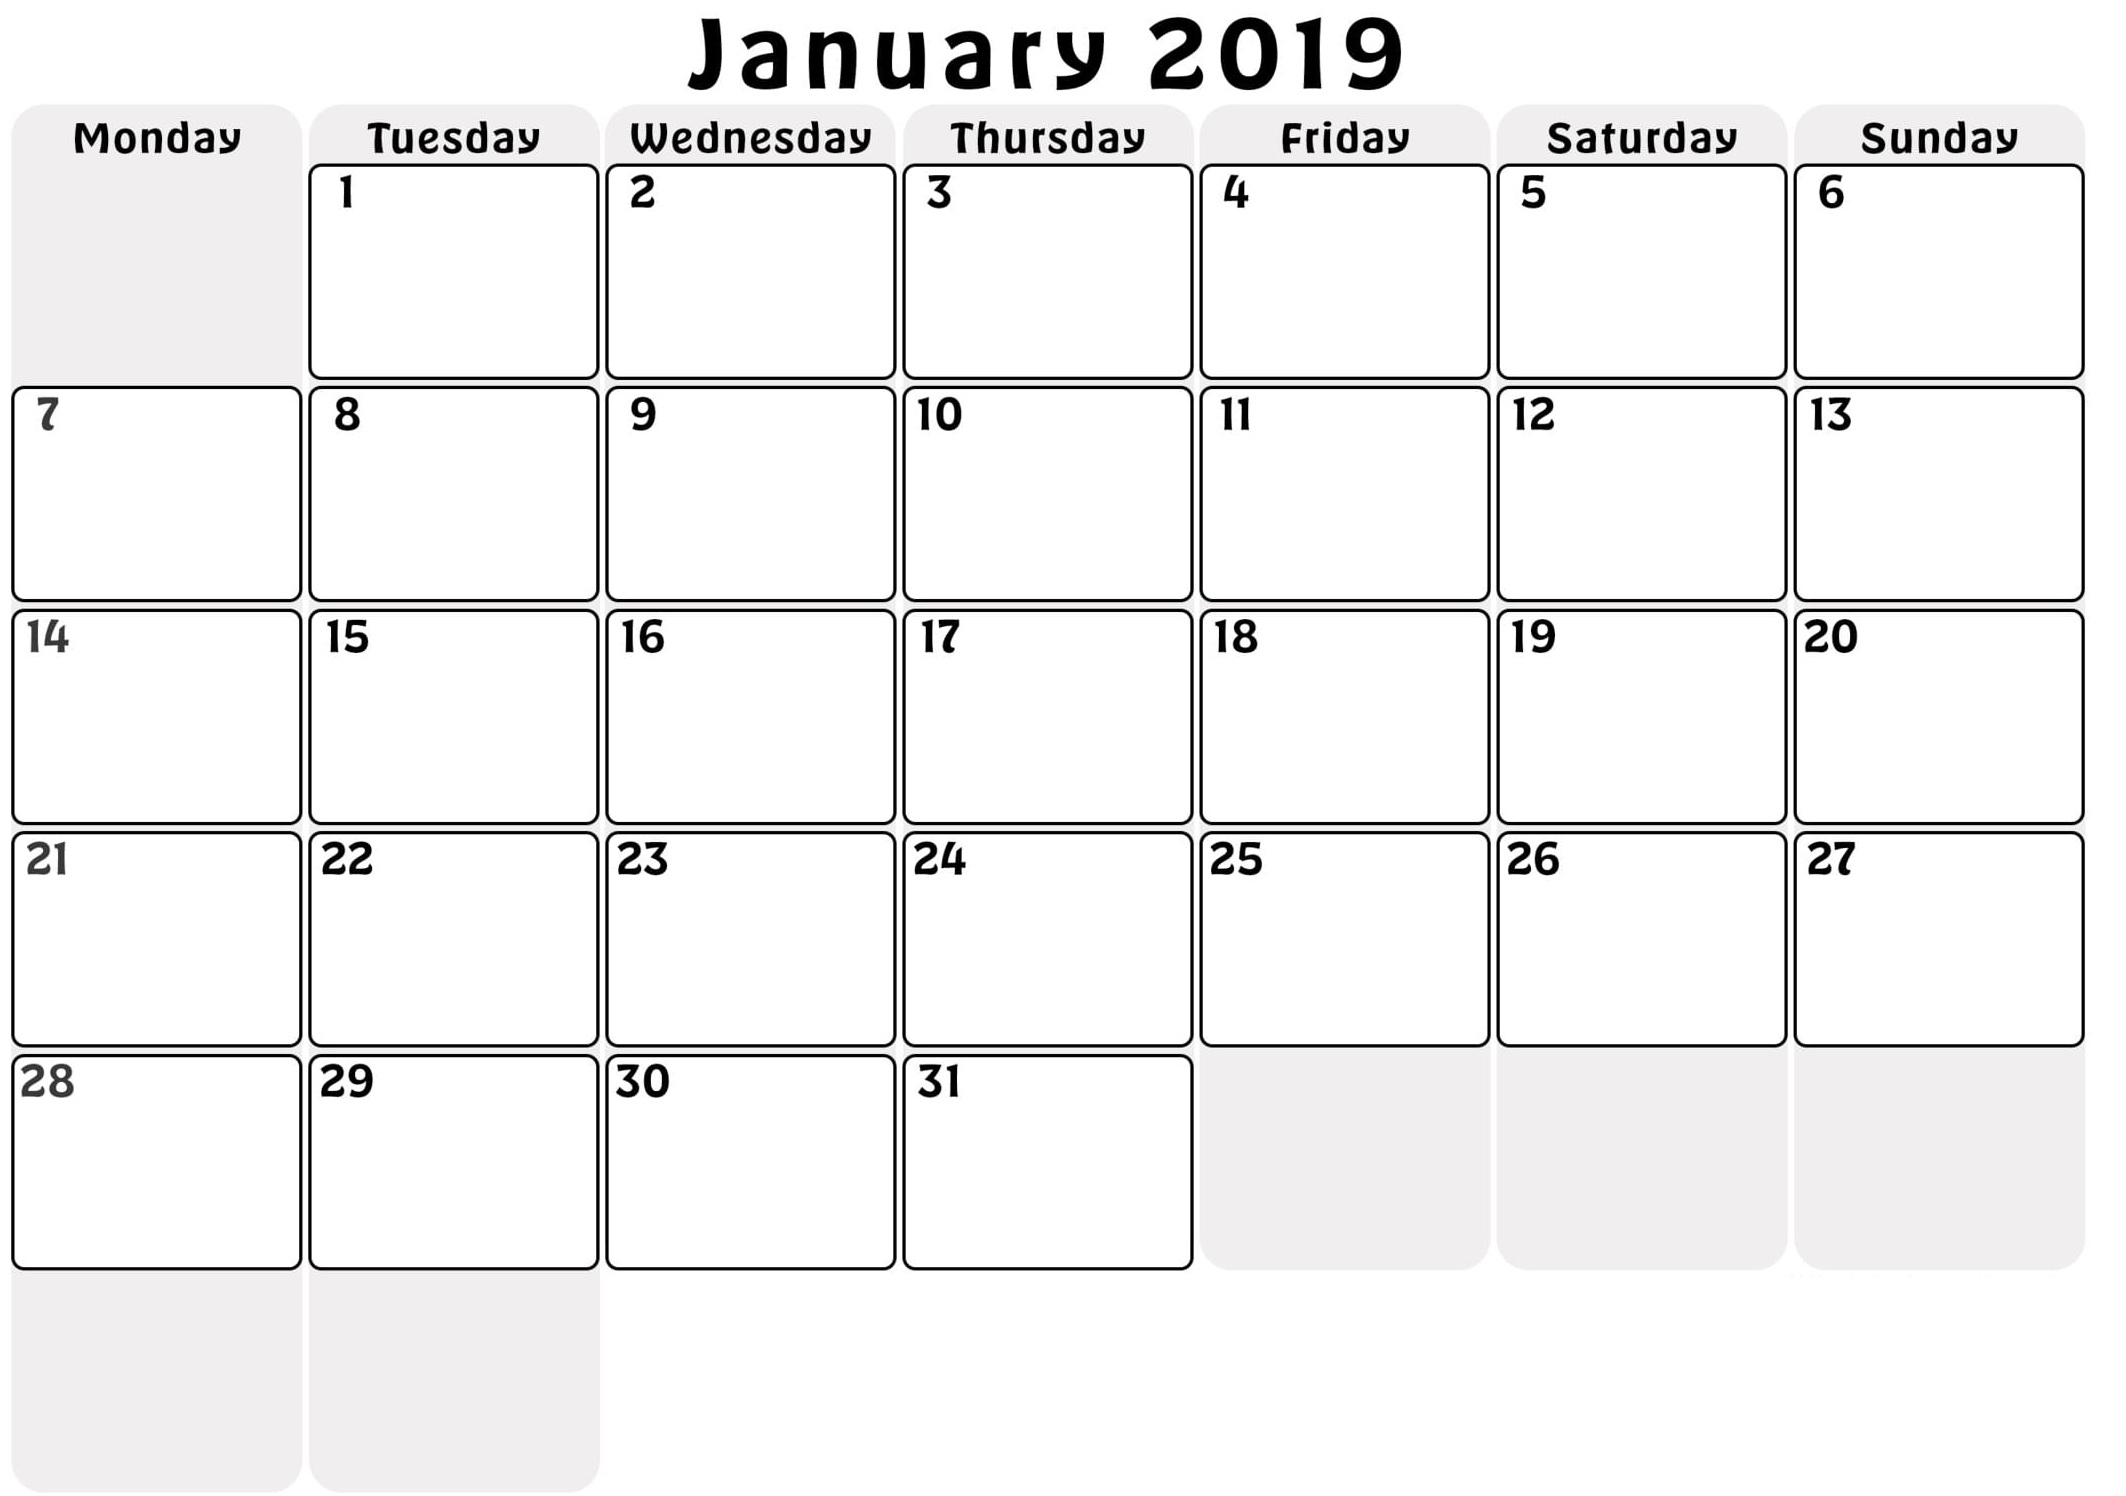 January 2019 Printable Calendar A4 11*8.5 Editable Page With